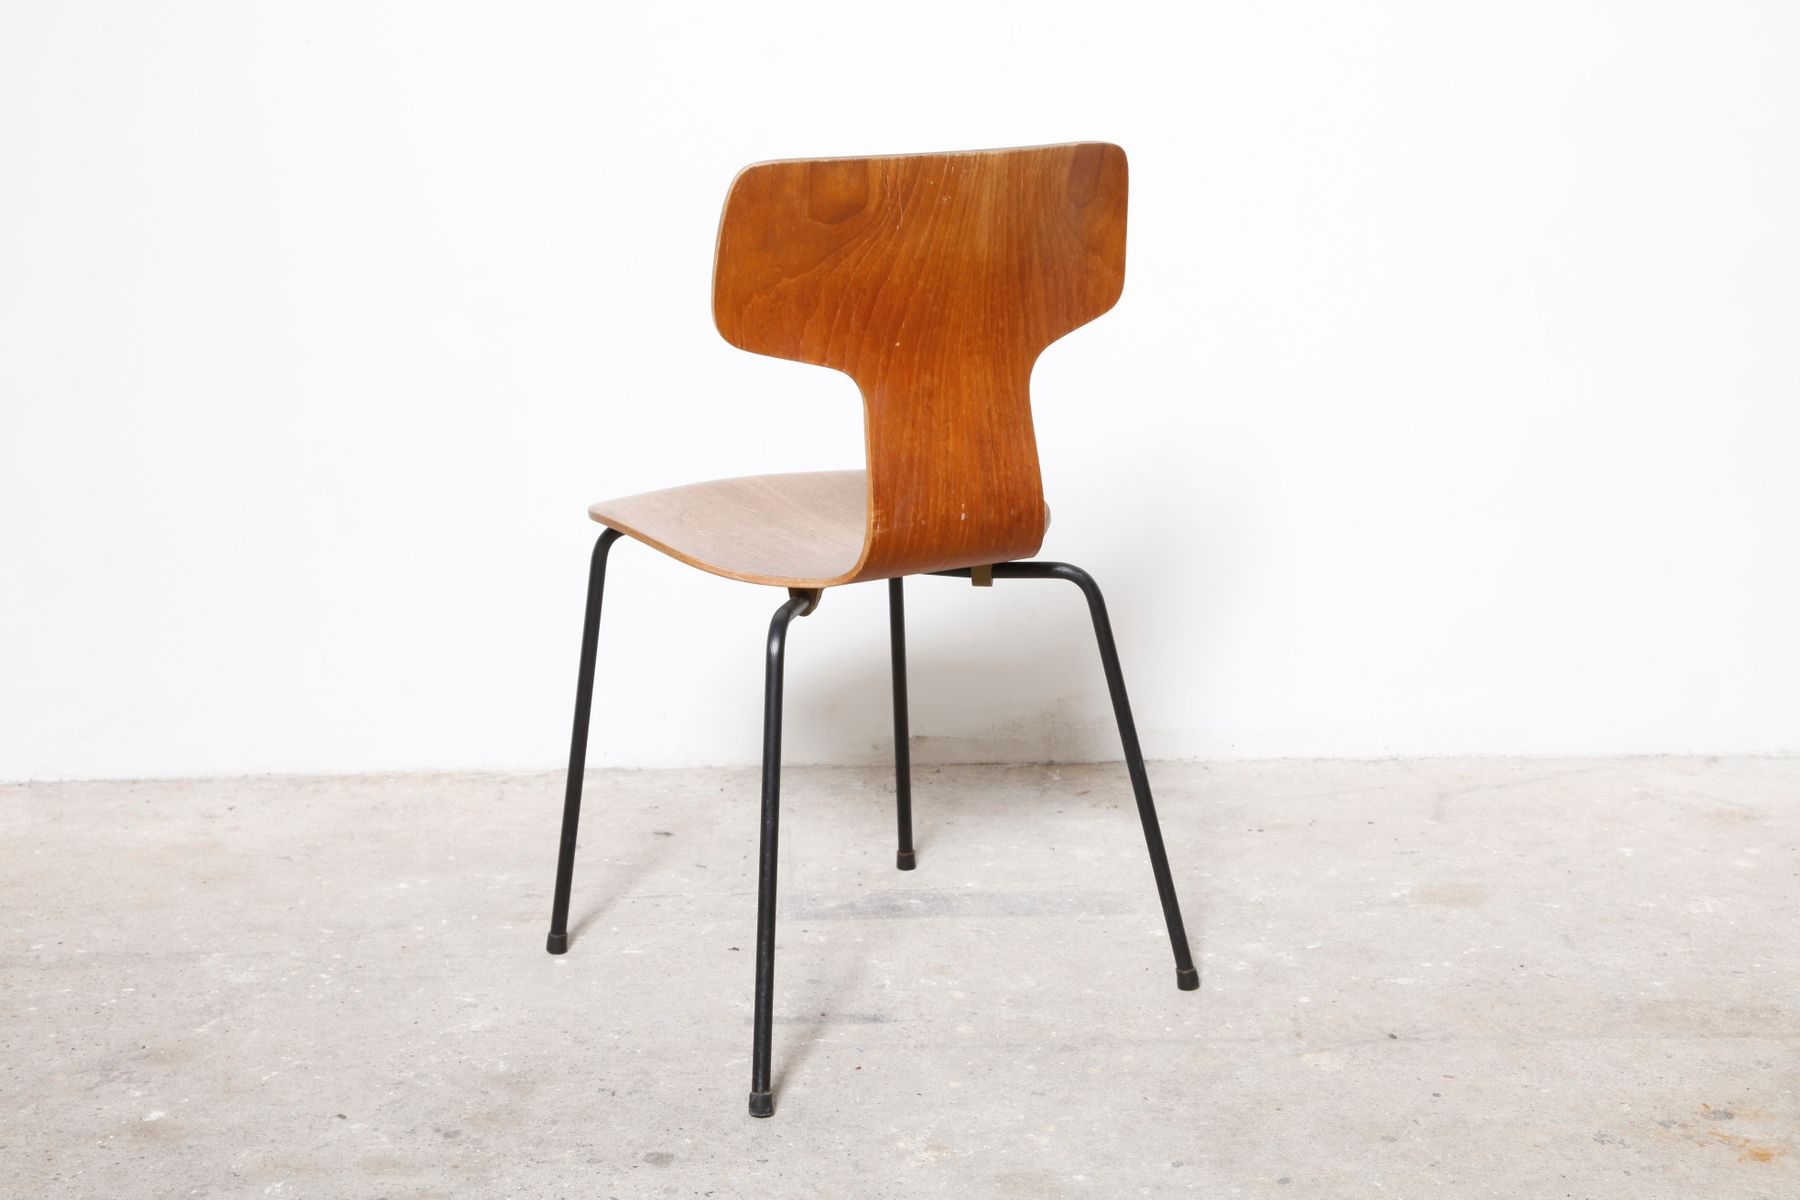 3103 chair by arne jacobsen for fritz hansen 1960s for sale at pamono. Black Bedroom Furniture Sets. Home Design Ideas